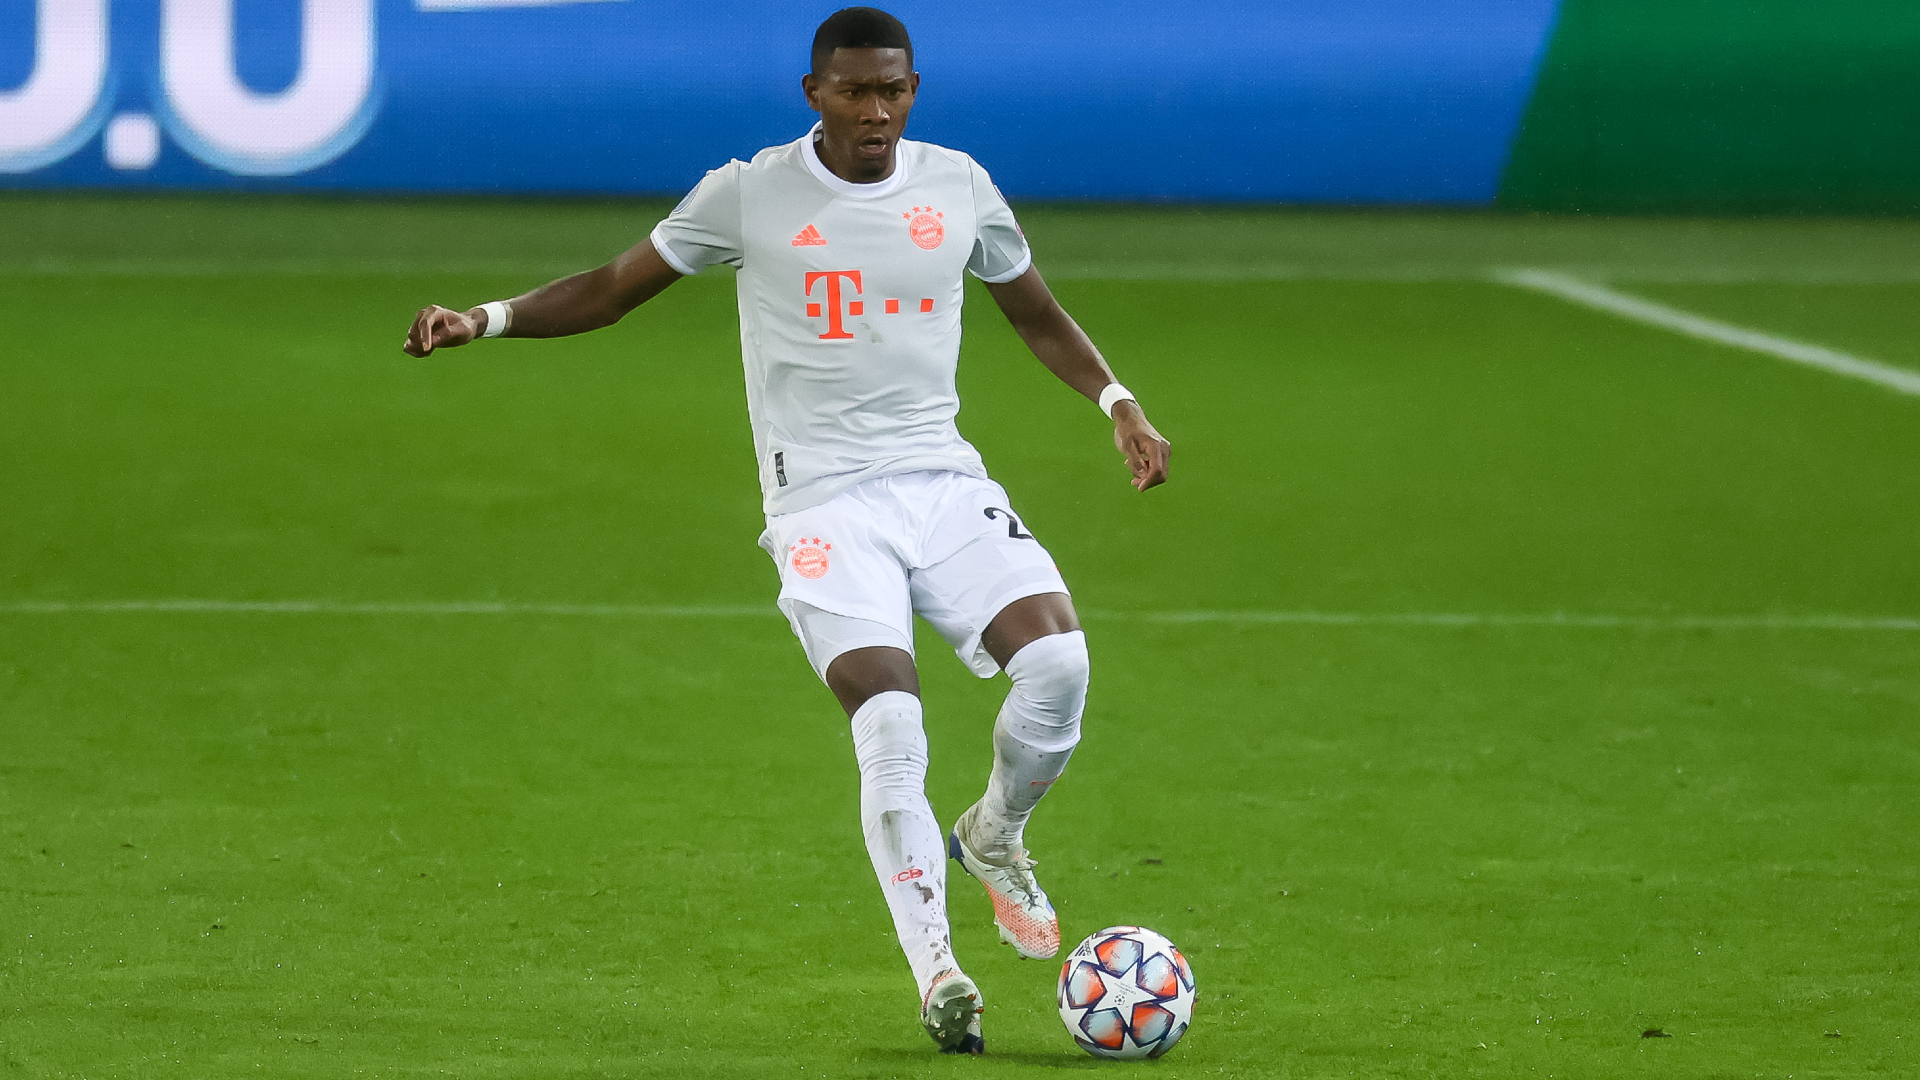 Rumour Has It: Real Madrid close to Alaba signing, Man Utd expect Sancho price drop